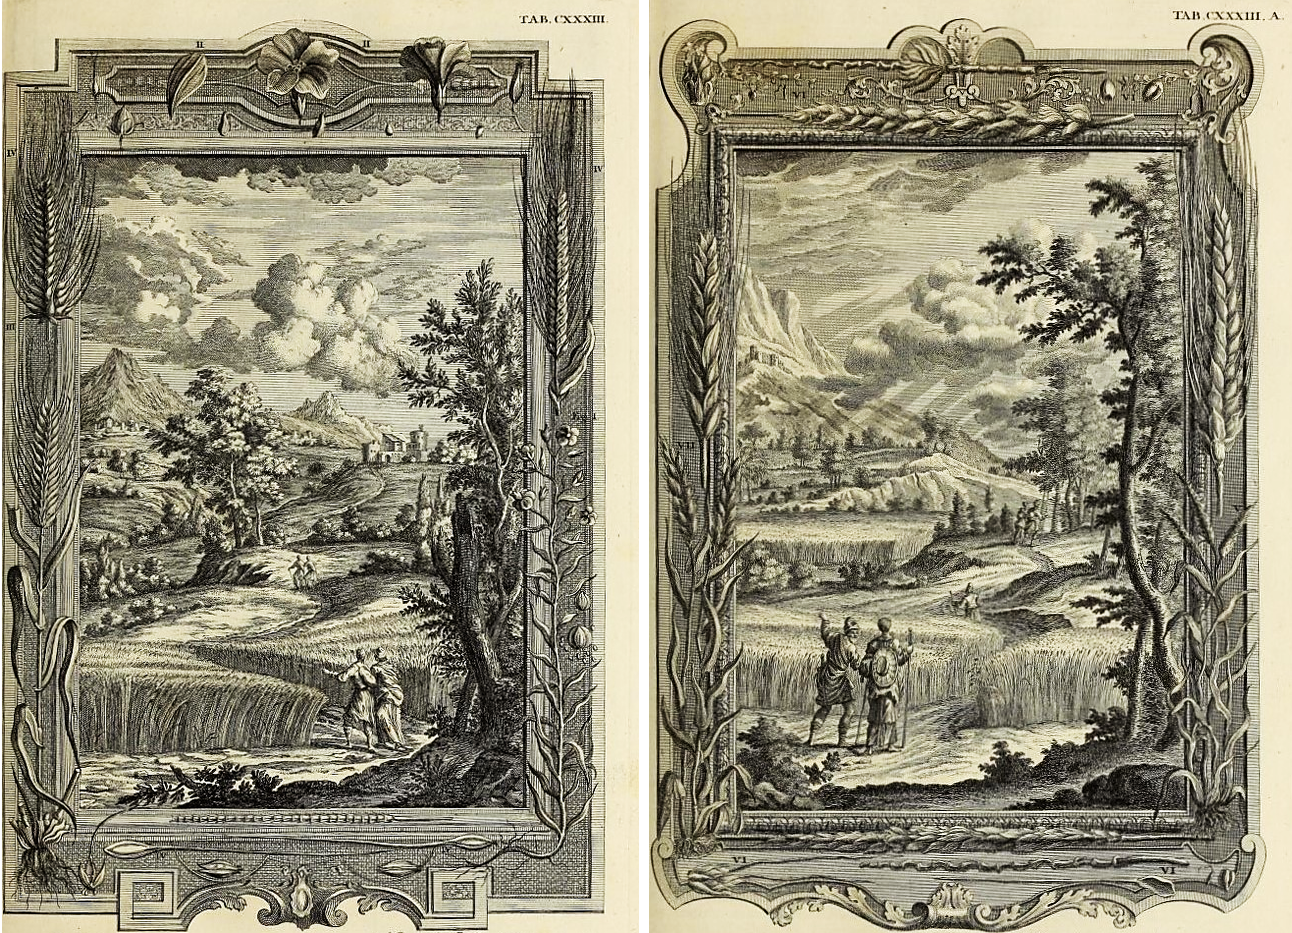 Image 4: J. Fredrich: Flax and Barley (Exodus 9: 31); M. Tyroff, Emmer and Wheat (Exodus 9:32). Copper-plated engravings on paper, 10 ¼ x 16 inches; Johann Scheuchzer, Physica Sacra (1731-1735).